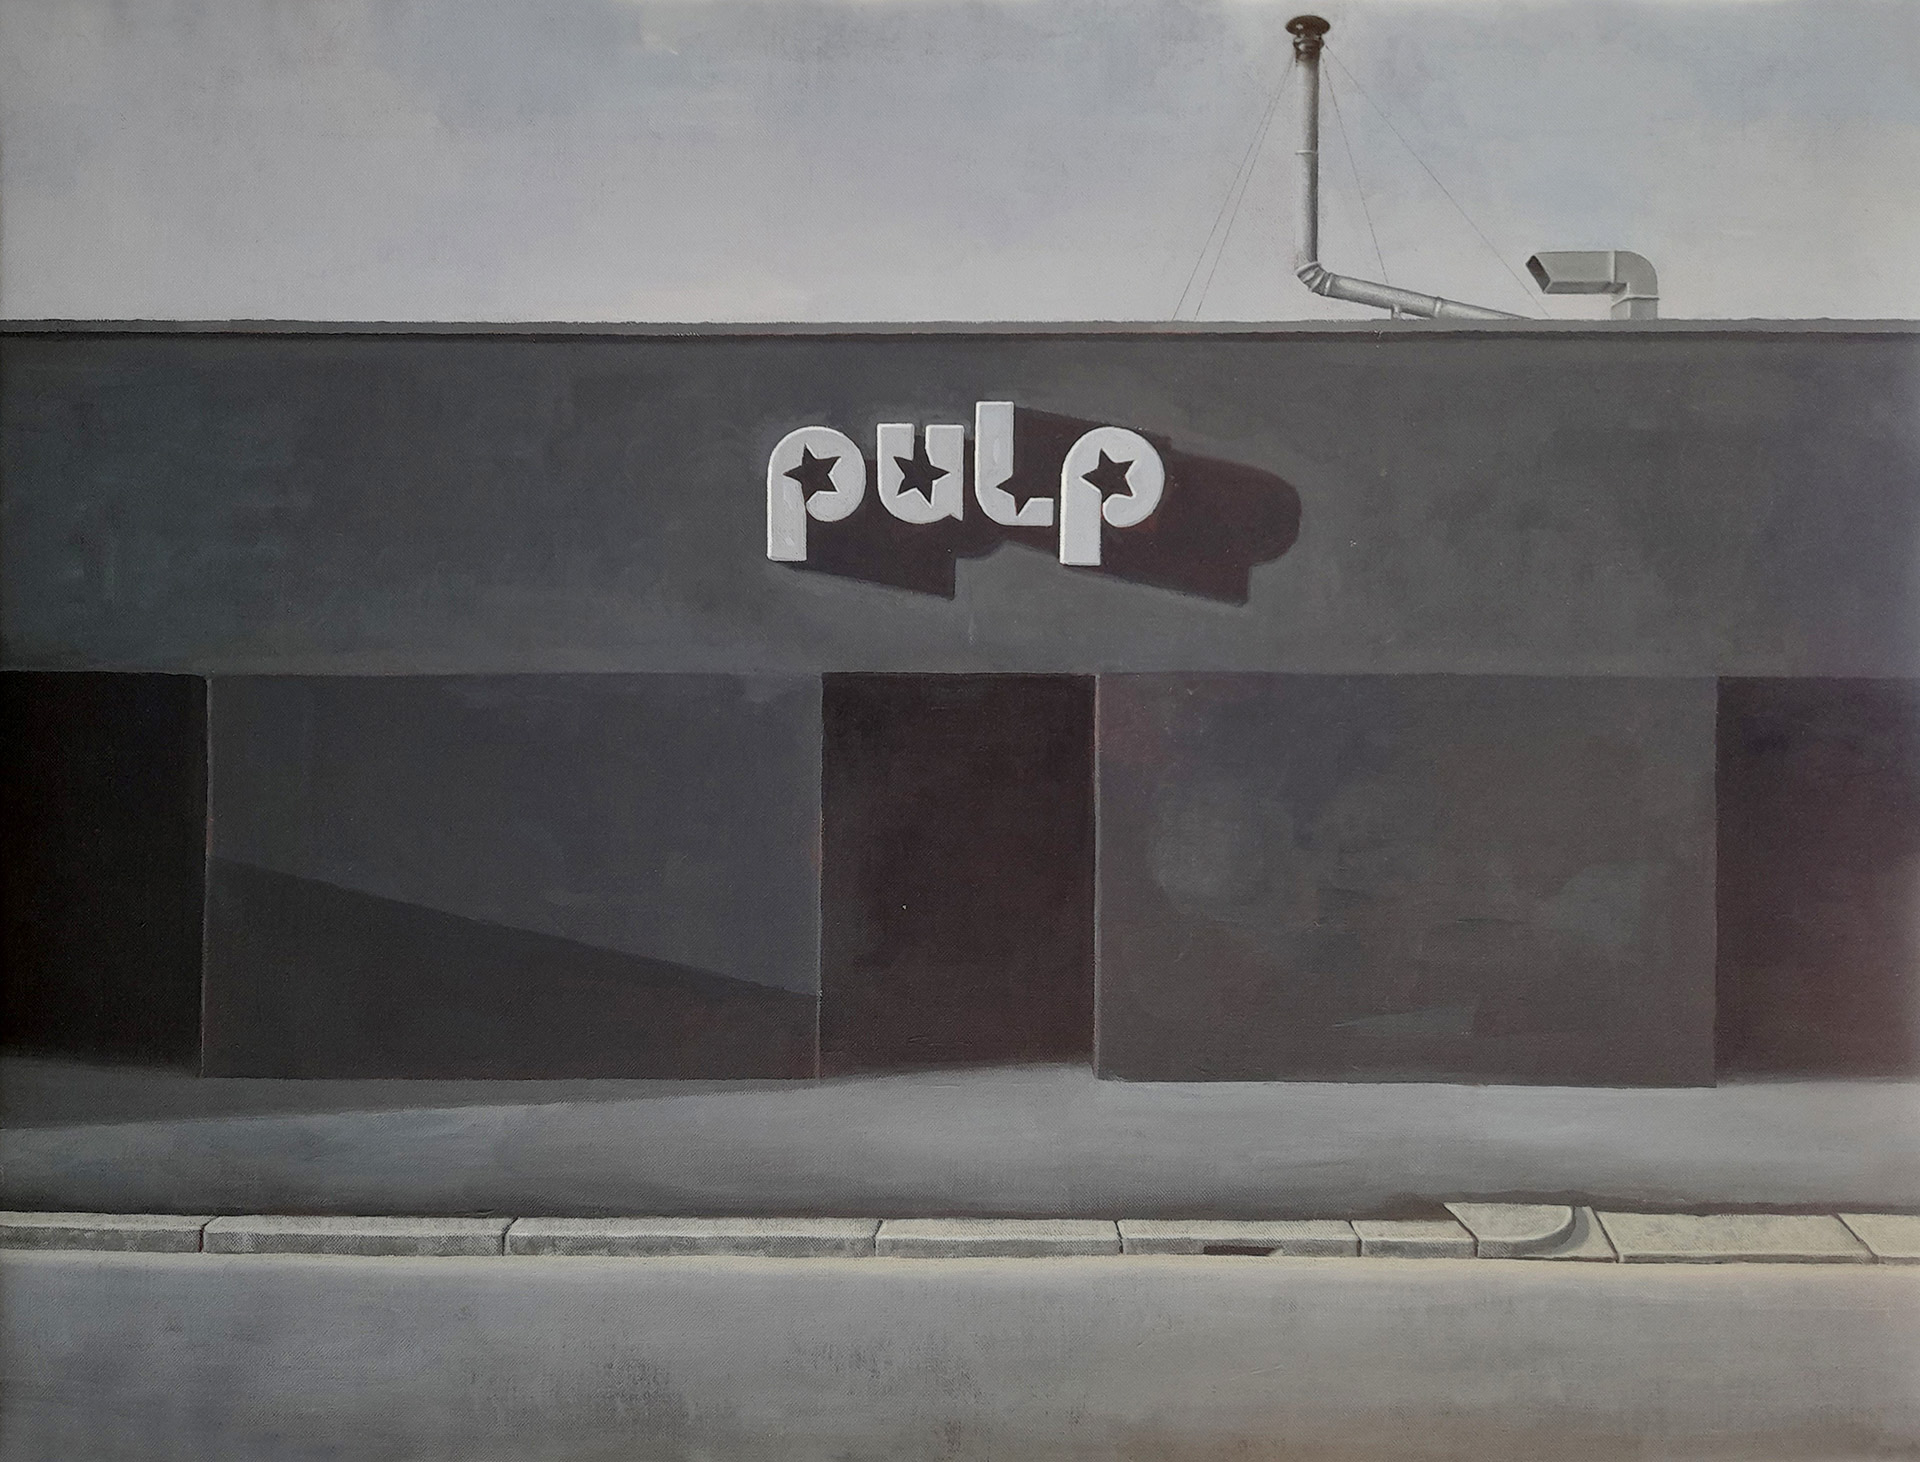 pulp disco painting by guido pigni